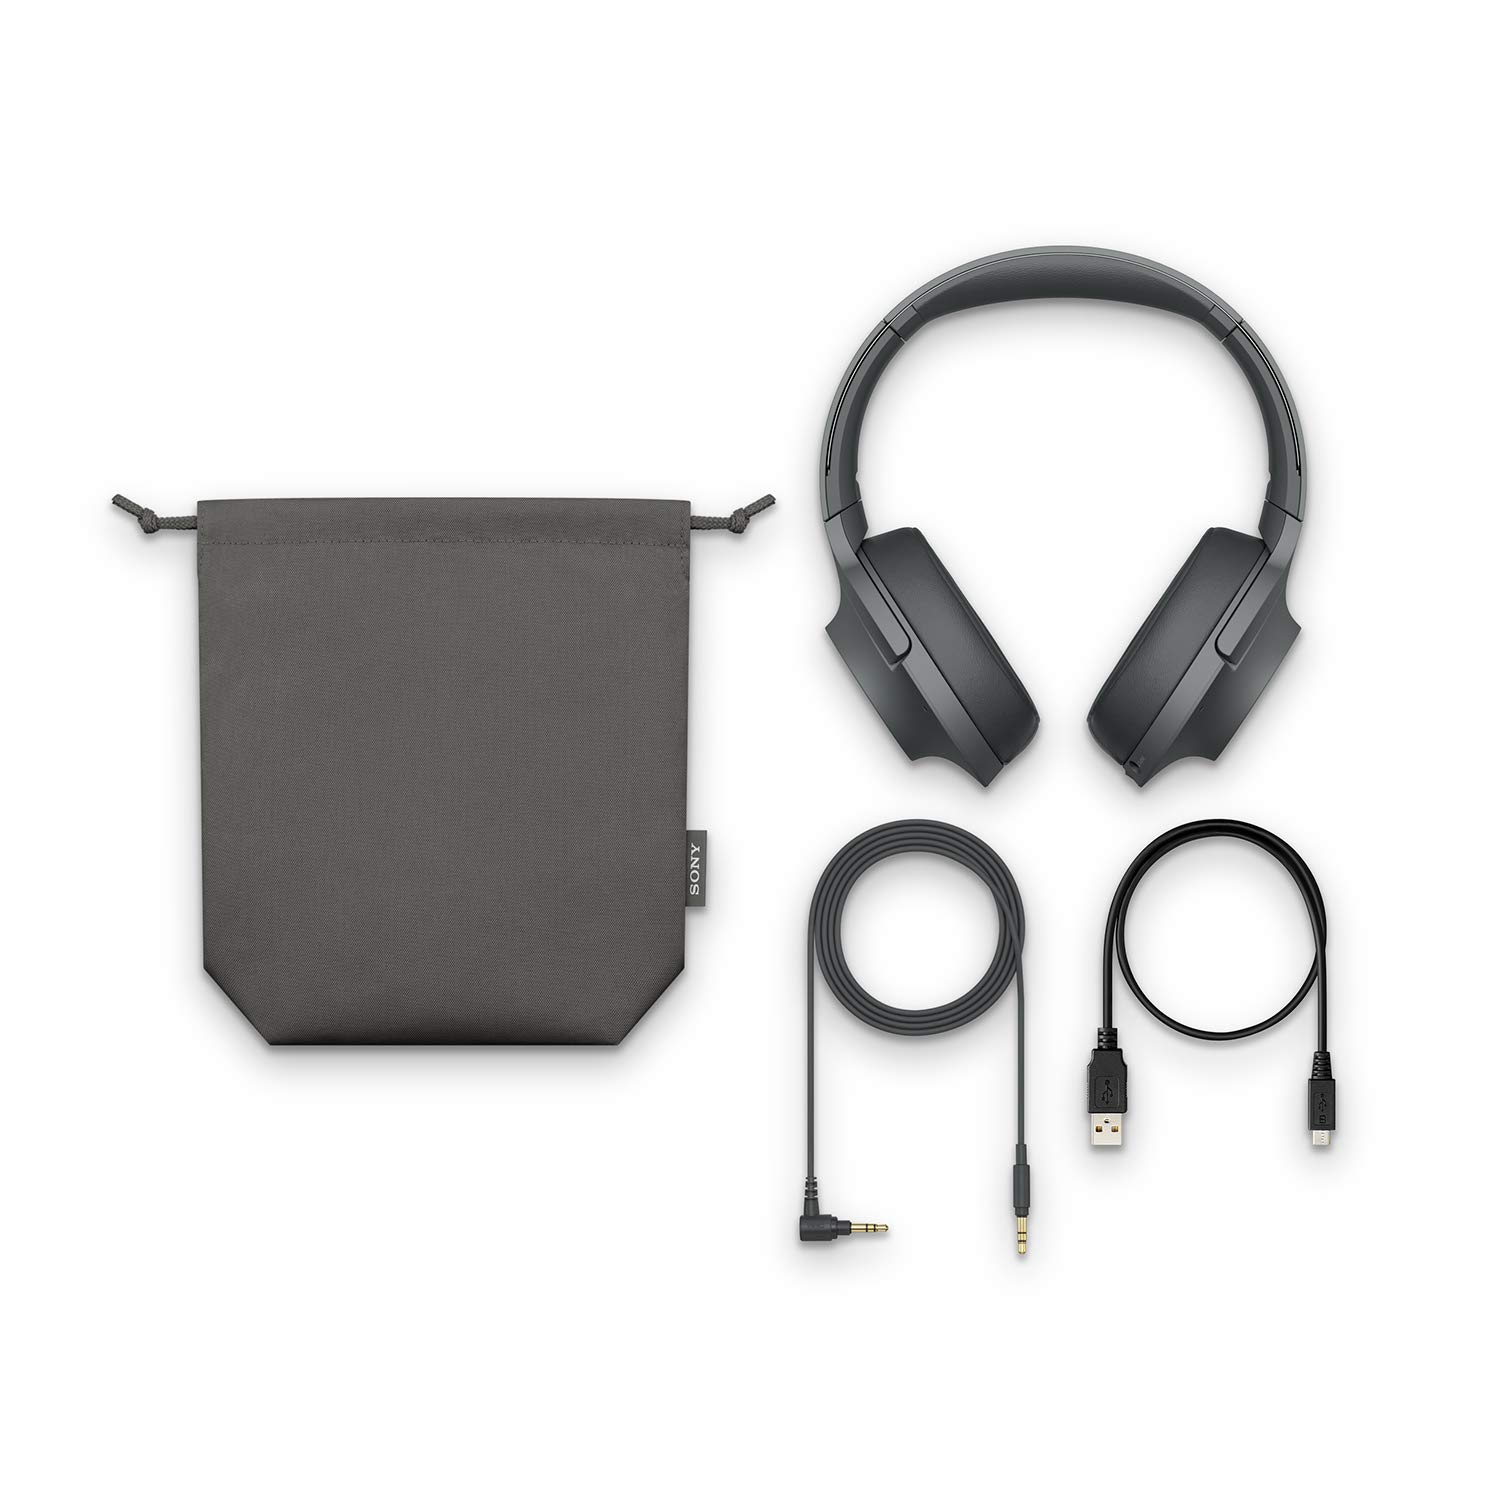 Sony Sony whh900n hear on 2 wireless overear noise cancelling high resolution headphones, 2.4 Ounce by Sony (Image #5)